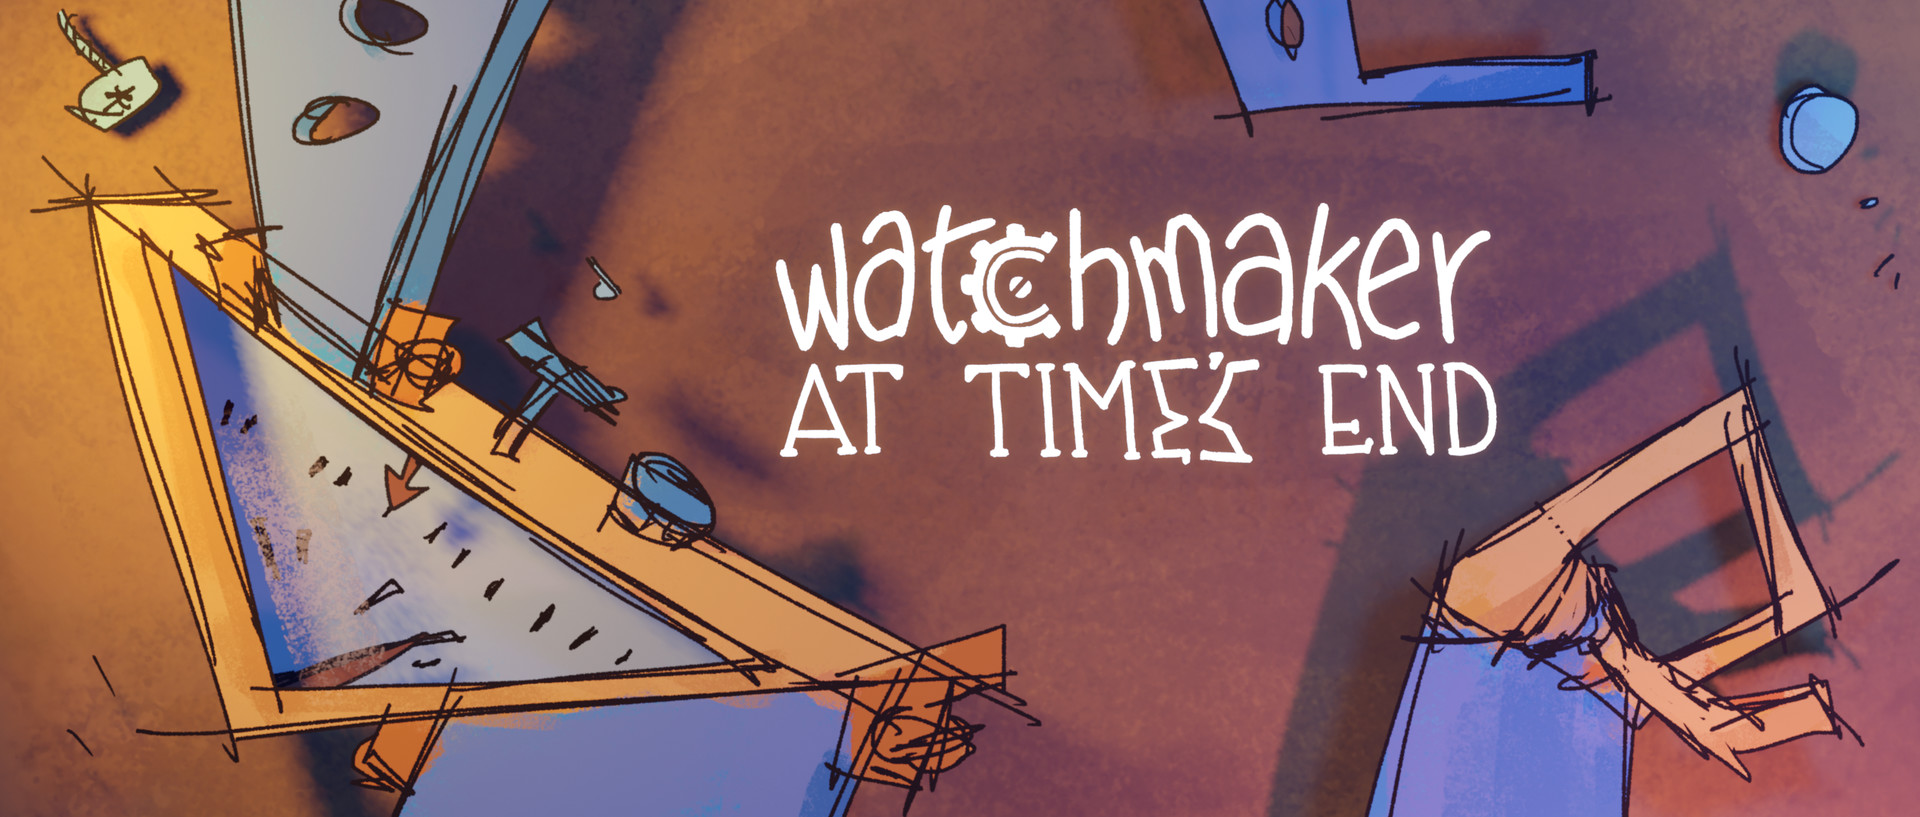 Watchmaker At Time's End